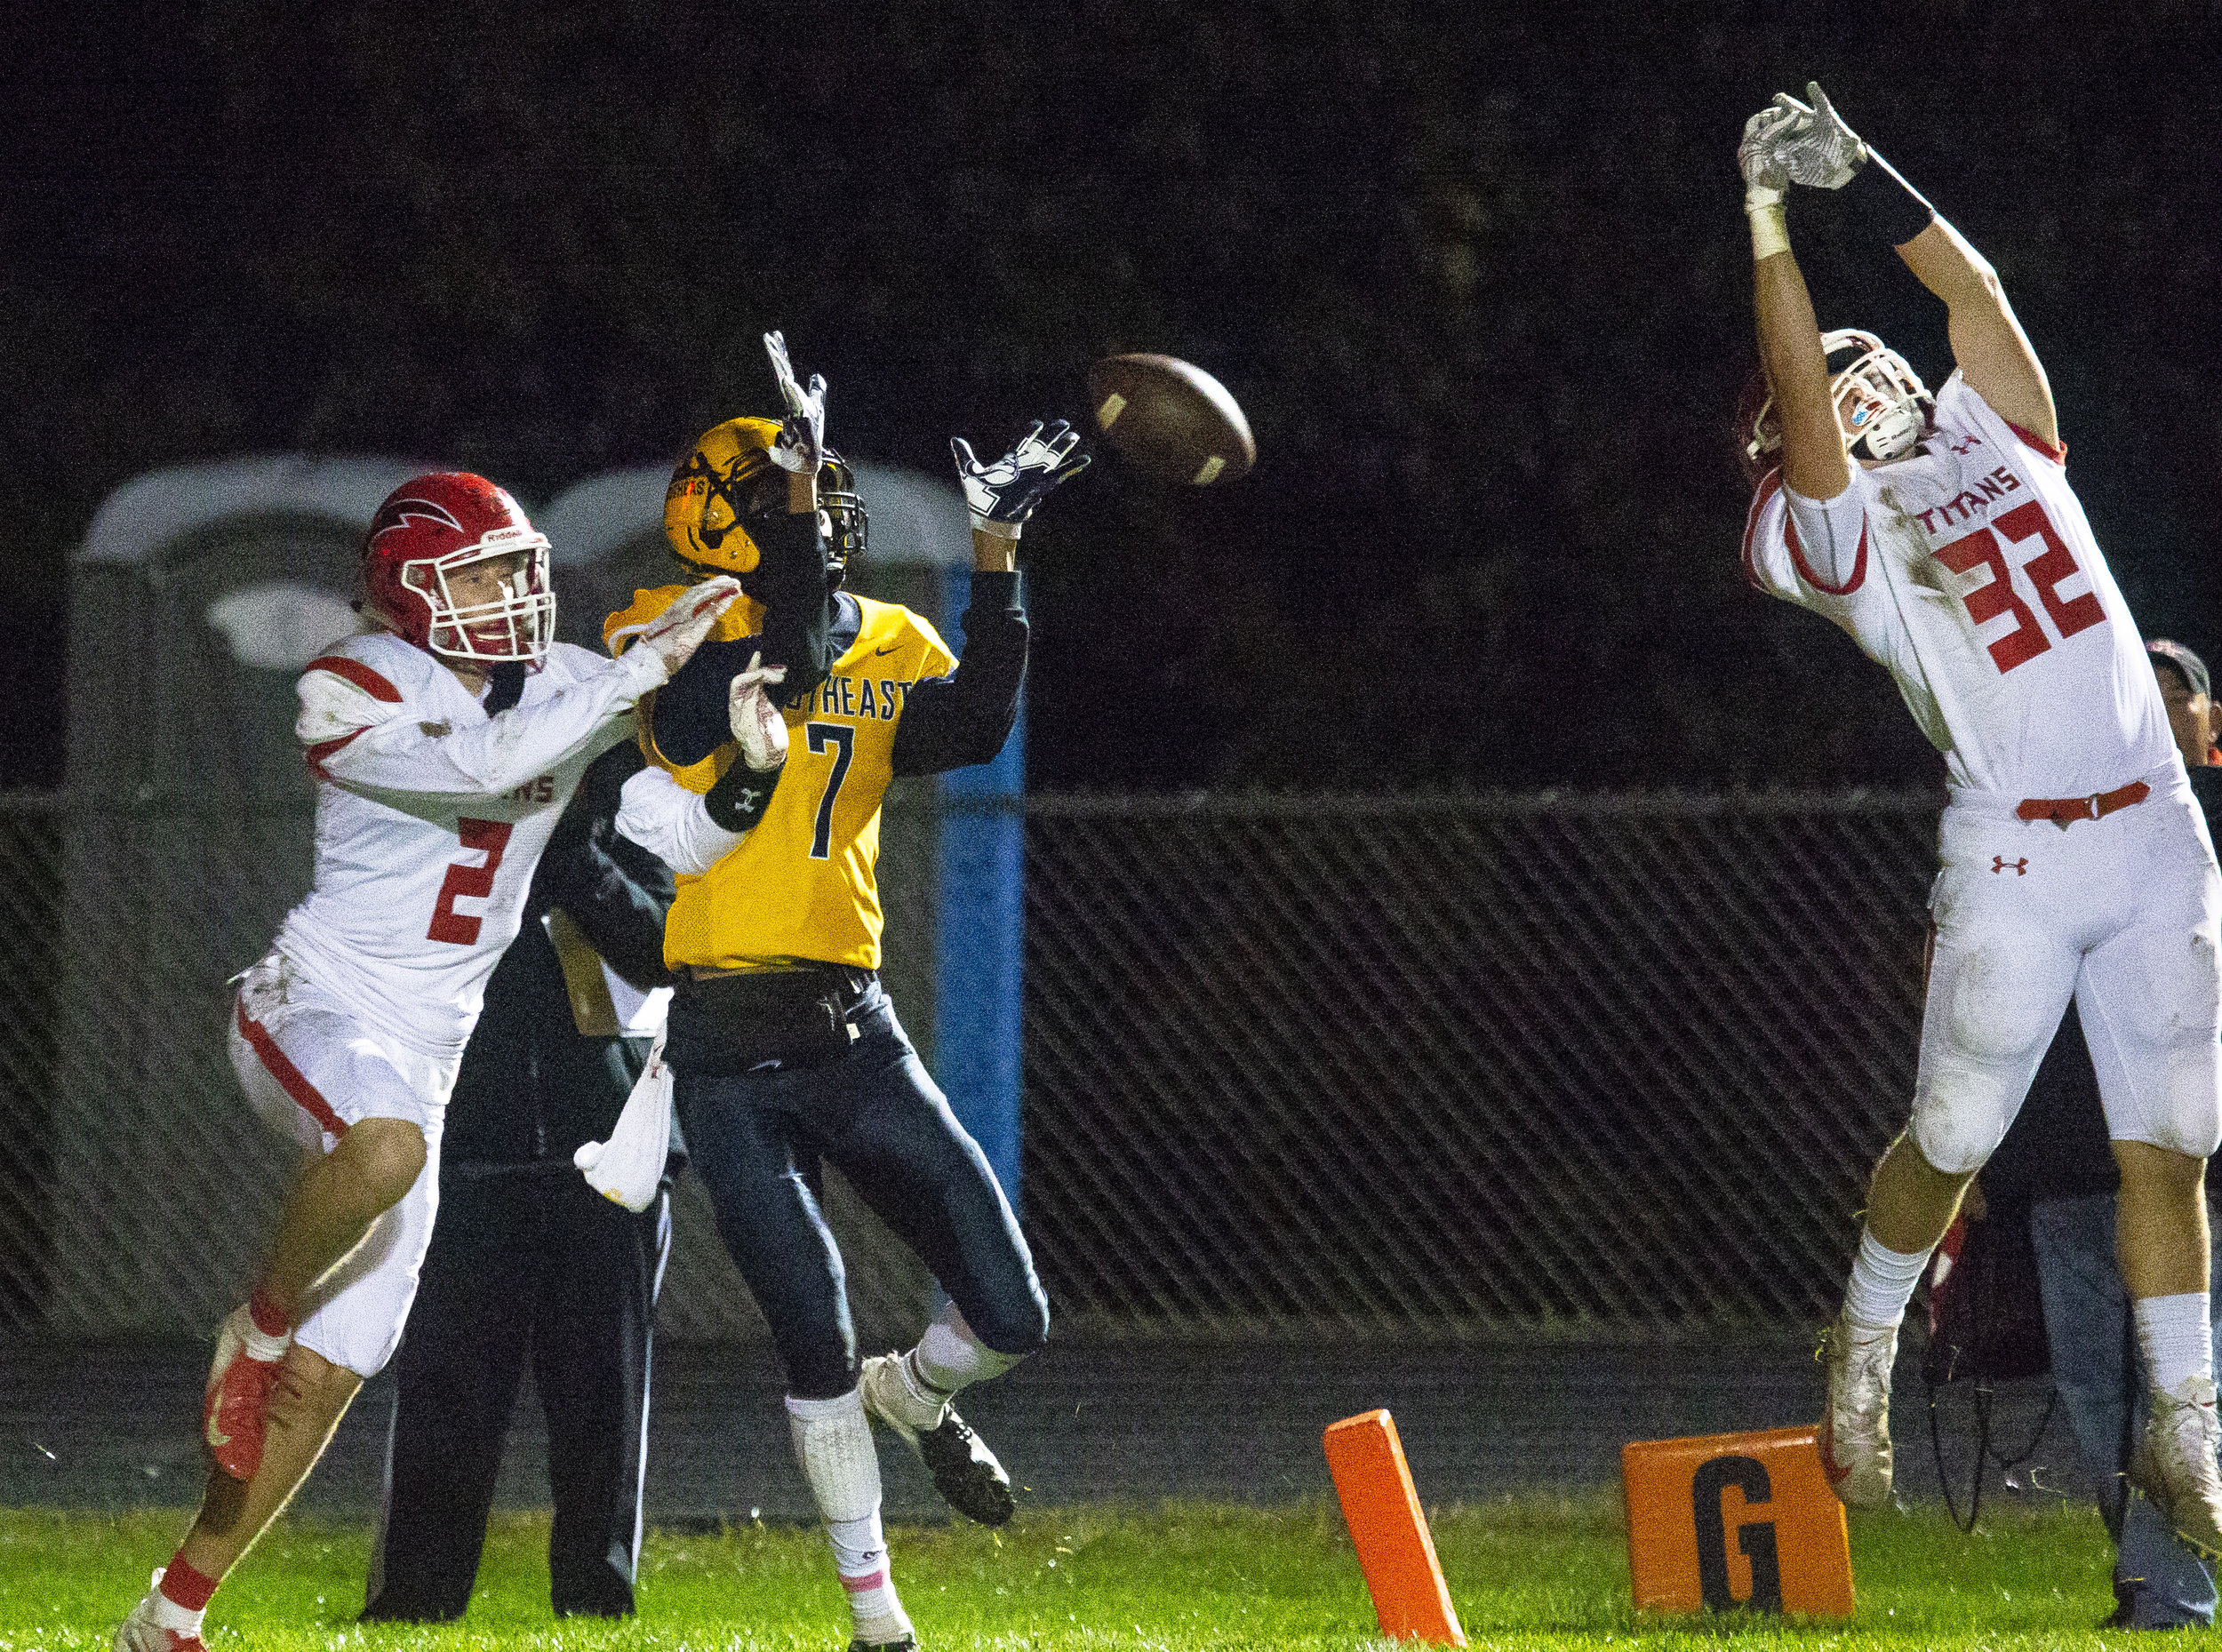 Glenwood's Jake Wooldridge, right, breaks up a pass intended for Southeast's Karlous Perry at the end of the second quarter Friday, Oct. 12, 2018 at Southeast High School's Spartan Field in Springfield, Ill. Glenwood's Conley Price was also defending. [Rich Saal/The State Journal-Register]